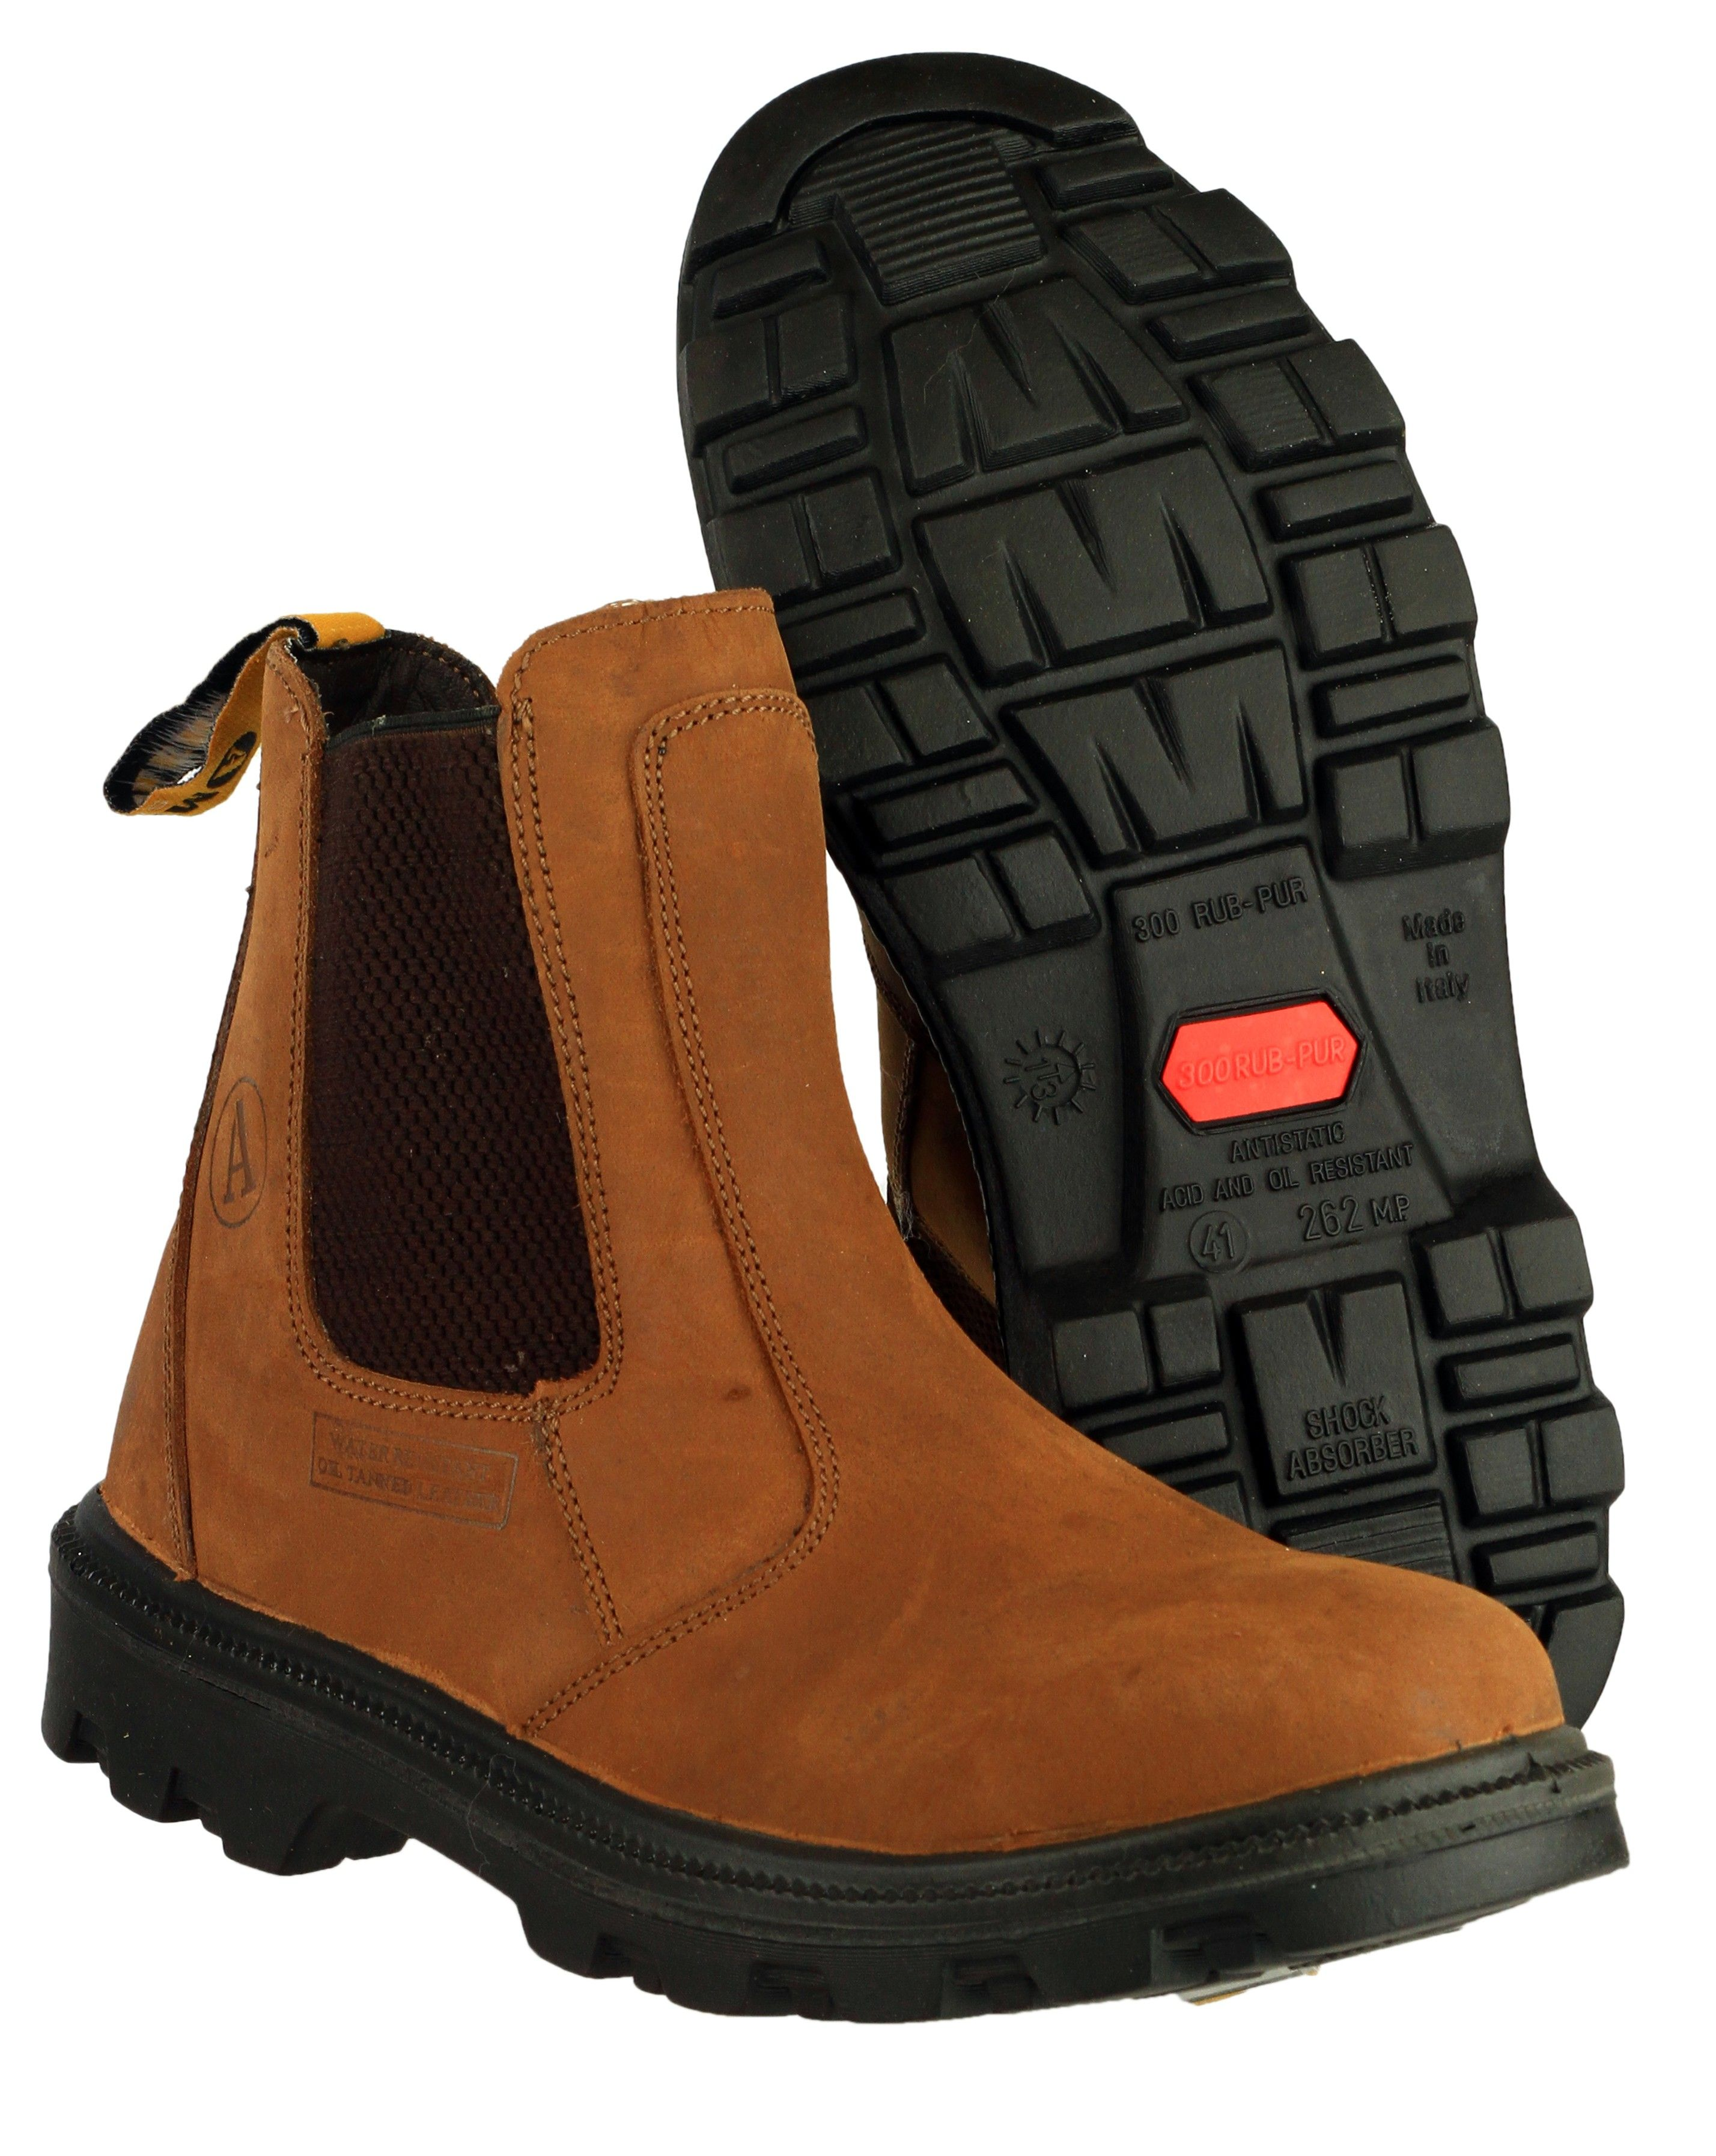 Amblers Safety FS131 Men's Dealer Boot. Steel toe cap and